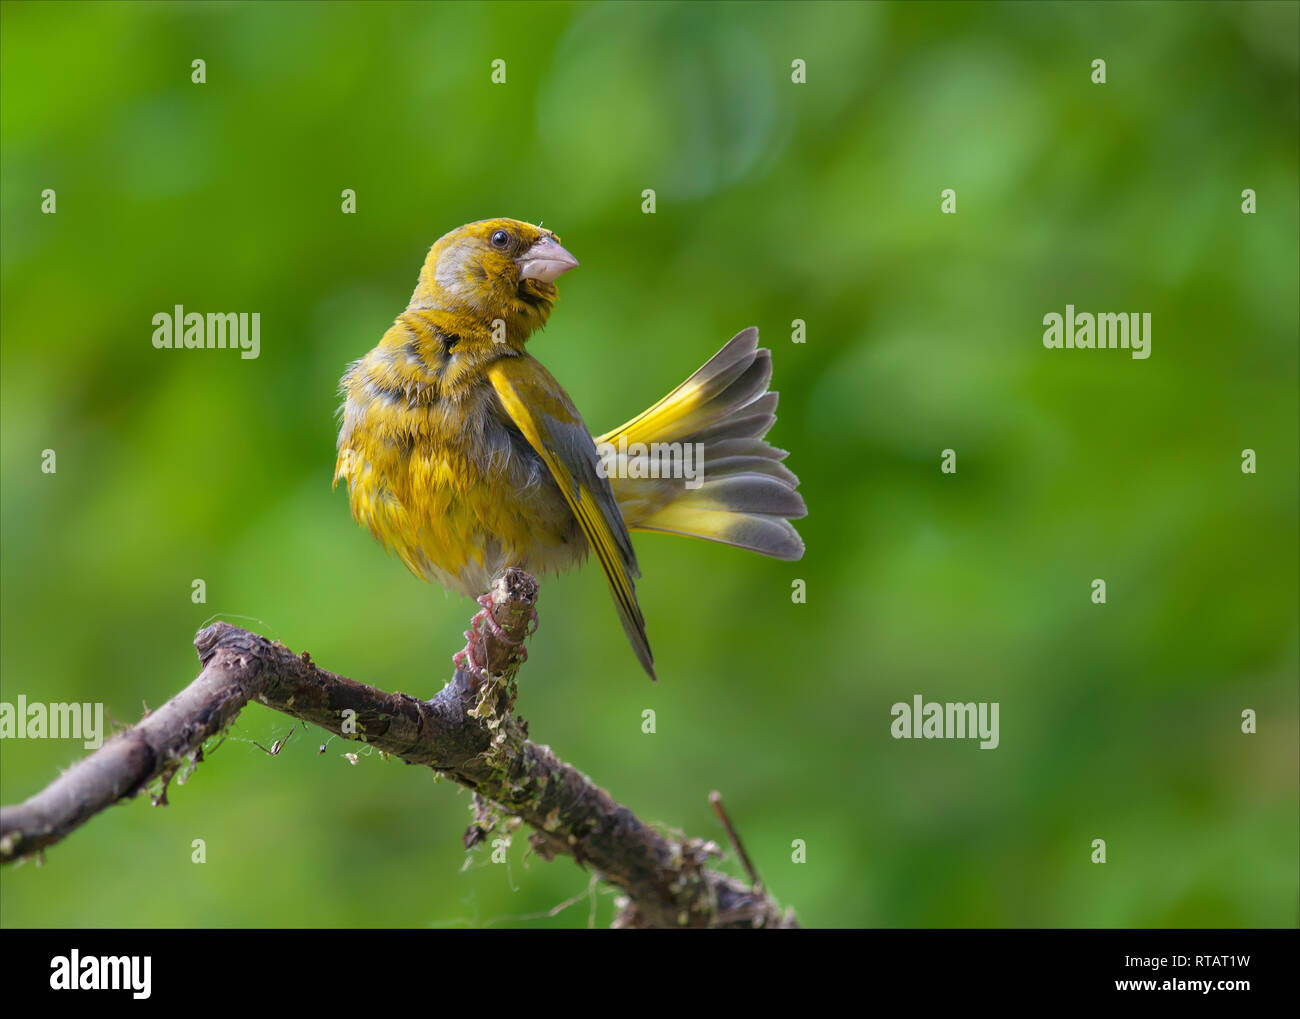 European greenfinch combing feathers aftter bathing in pond - Stock Image